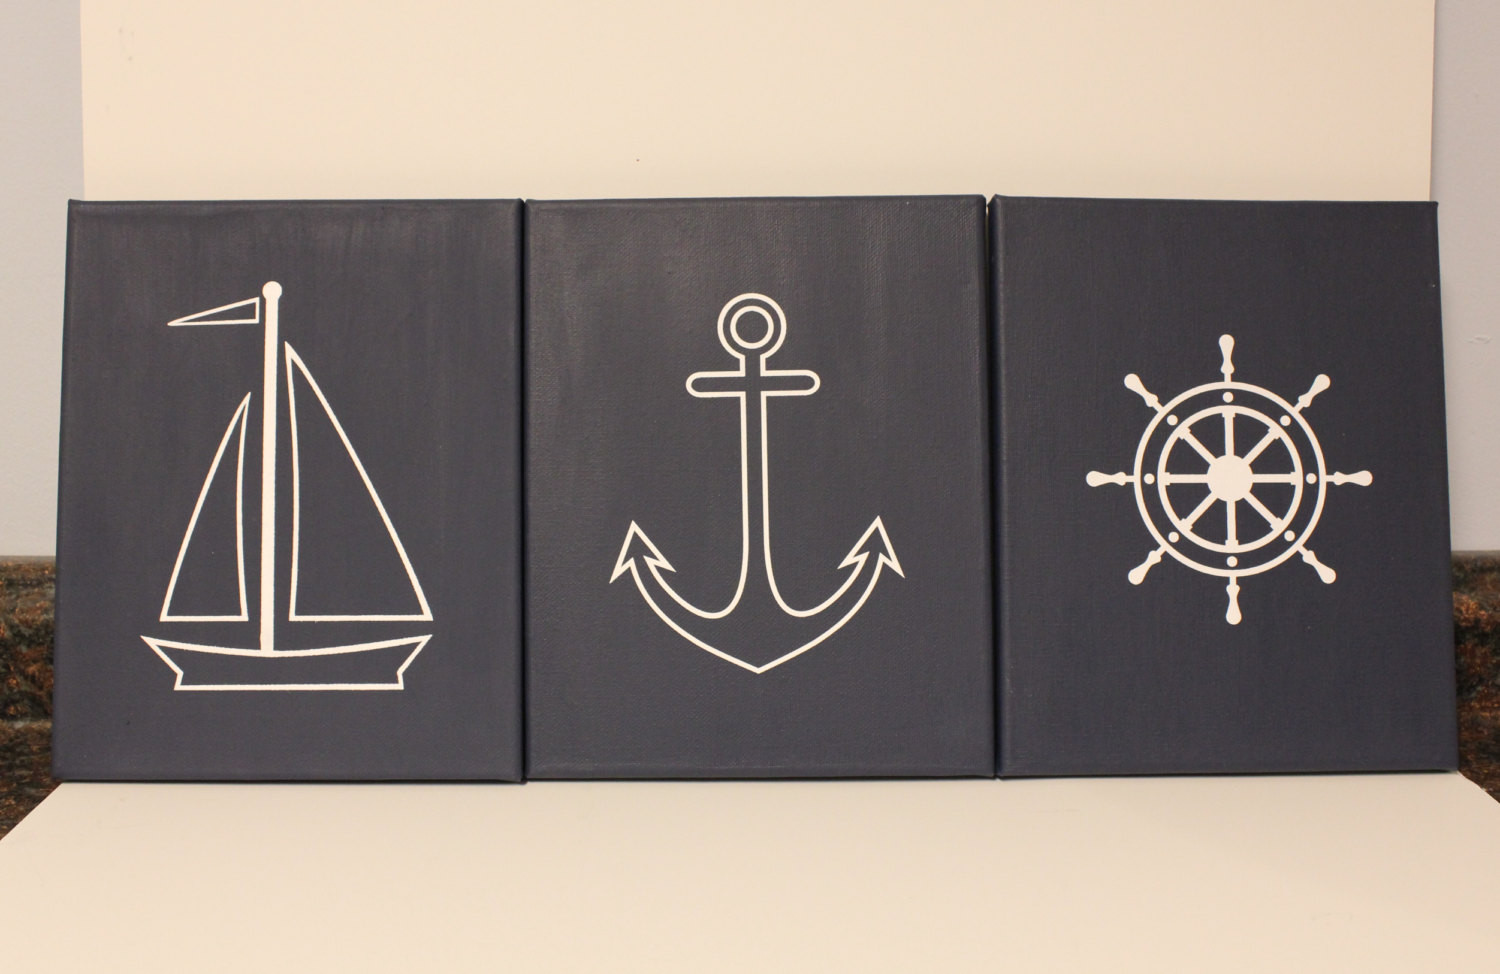 Best ideas about Nautical Wall Art . Save or Pin Wall Decor Nautical Now.